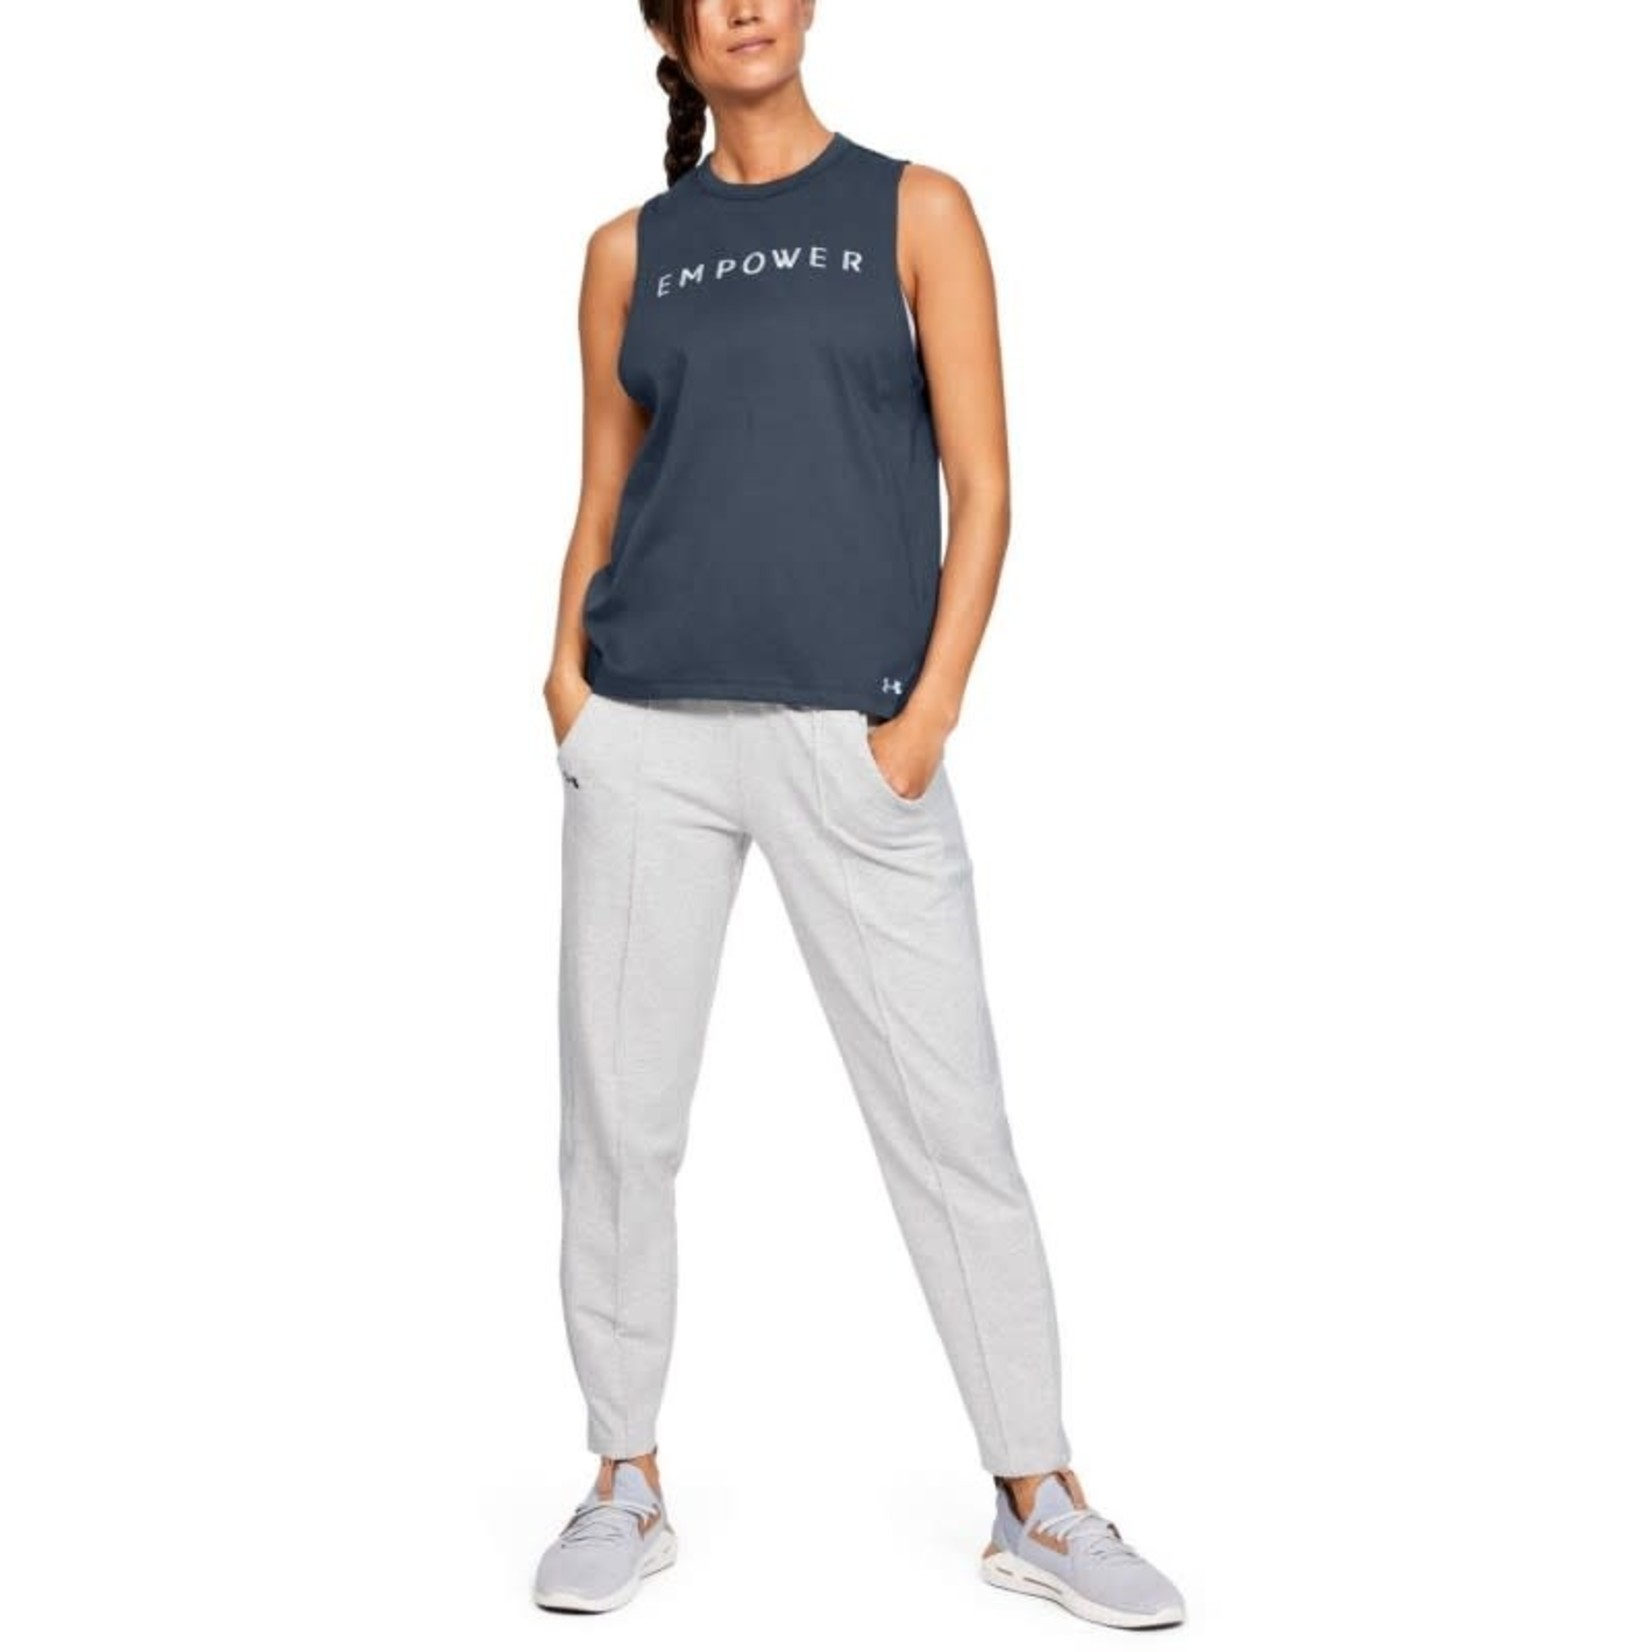 Under Armour Graphic Empower Muscle Sleeveless - blue